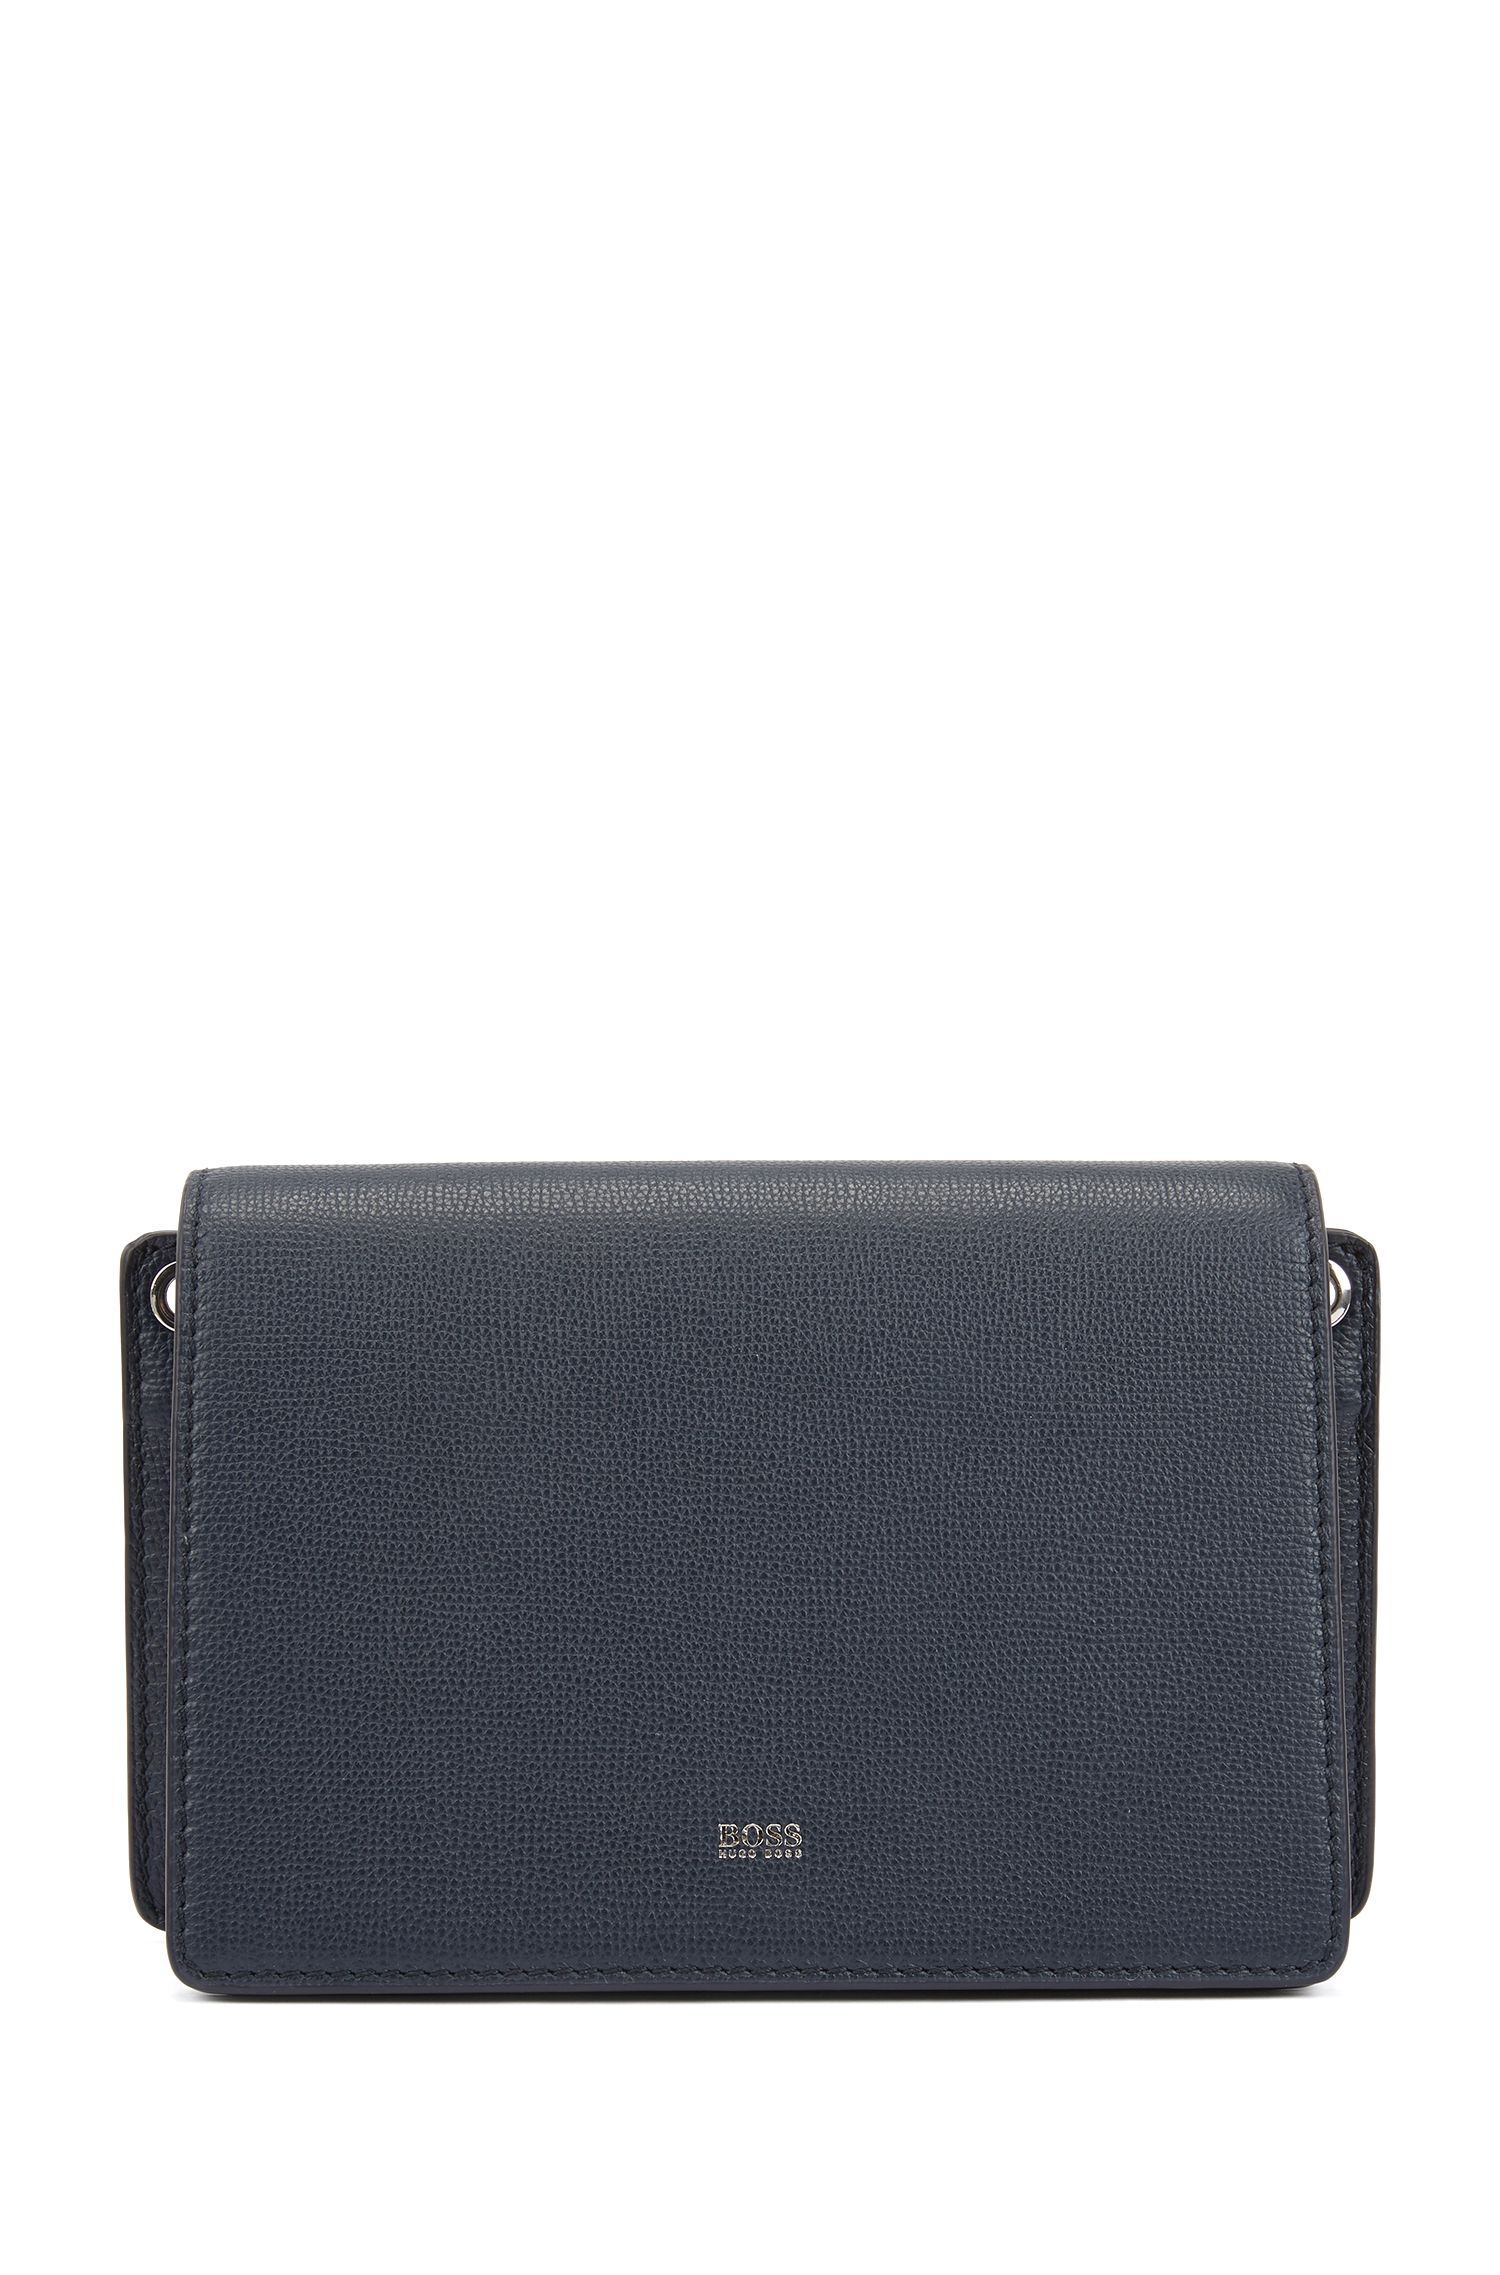 Crossbody bag in grainy Italian leather, Dark Blue